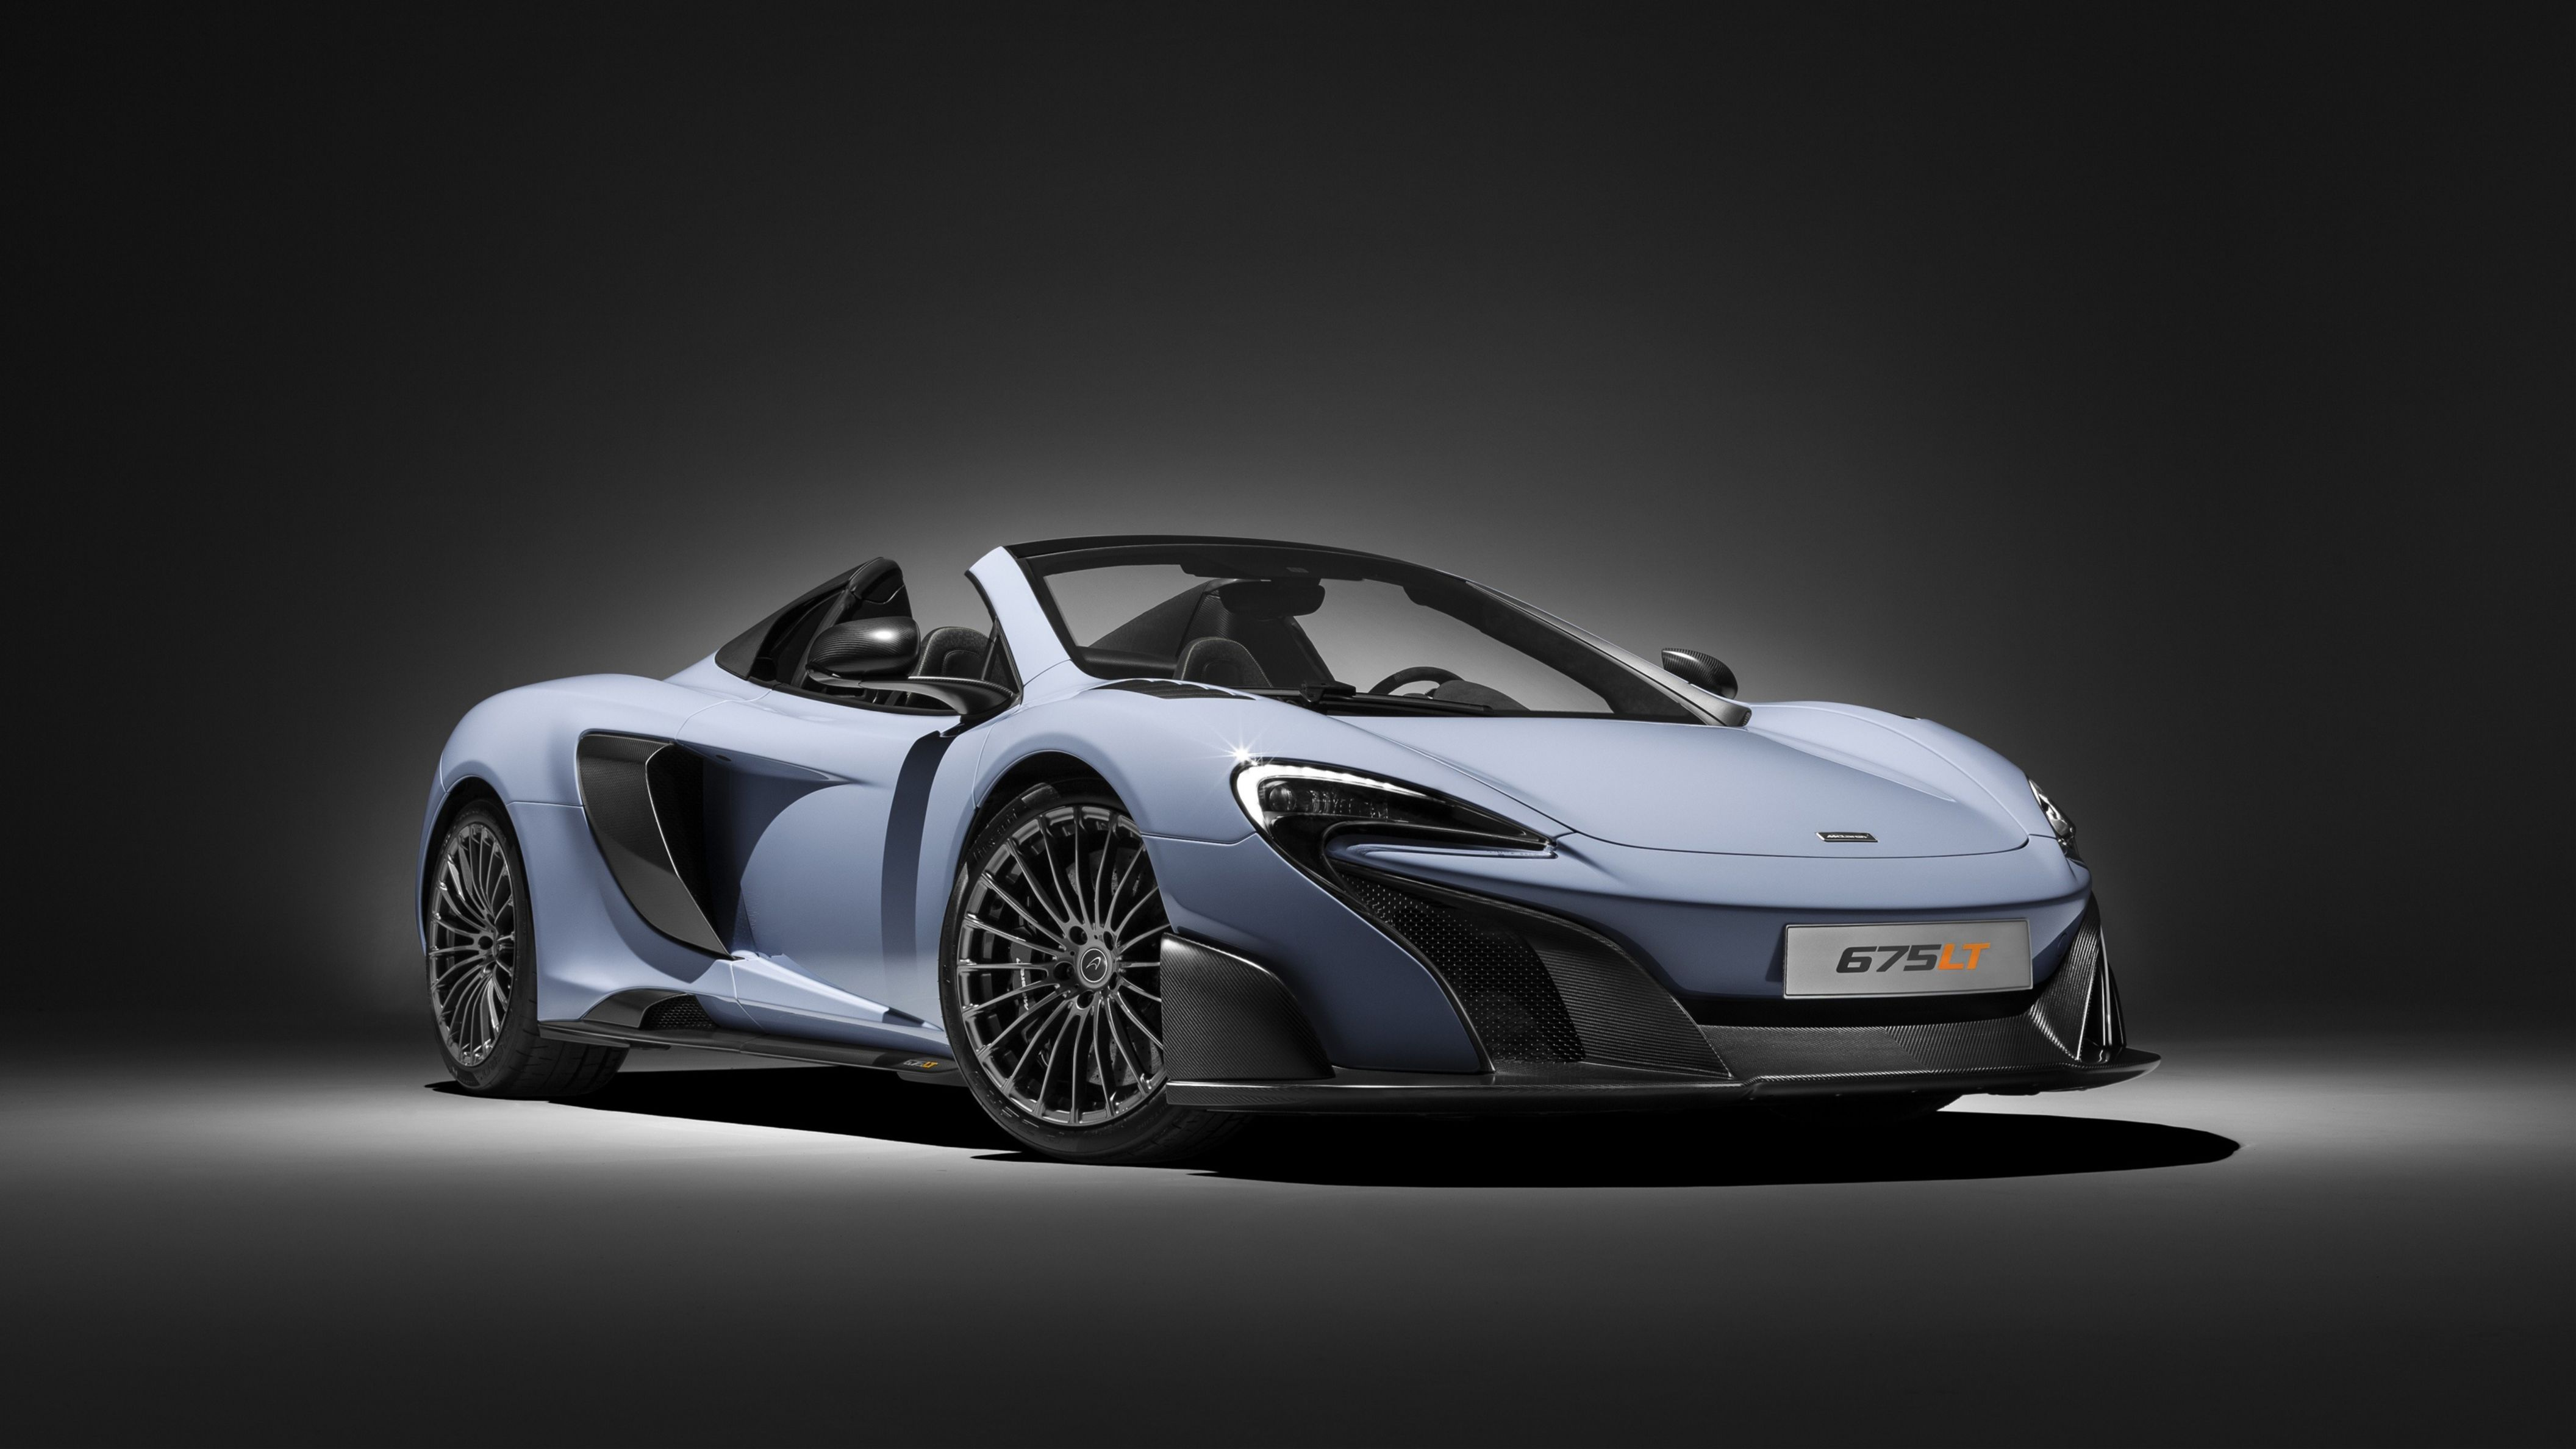 Download free HD 2016 Mclaren Mso 675lt Spider HD Wallpaper, image